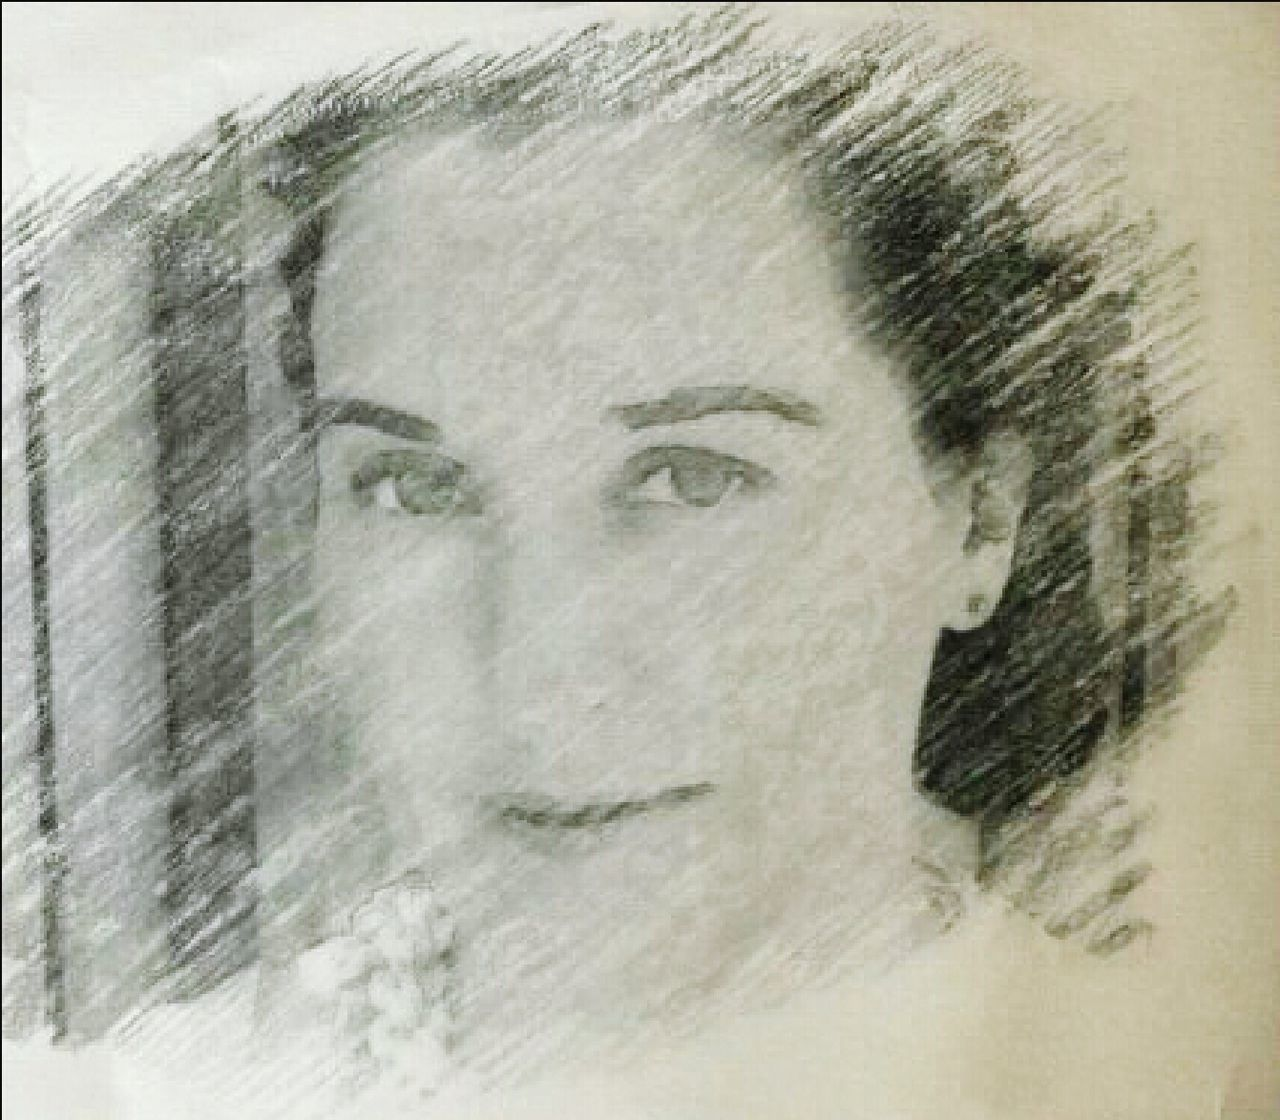 https://youtu.be/VZt7J0iaUD0 👀Yes, i think youve seen me before 👀 For Reals Thank You Face Ears Nose Off My Chest Re Edited Repost Abused Selfie Edit Woman Power Female Lyricalartistry New Beginnings Freedom Of Expression This Cool Edit Black And White Truth BnW Edits Sketch Art Portrait Of A Woman Smiling Eyes Smirk Beautiful Women